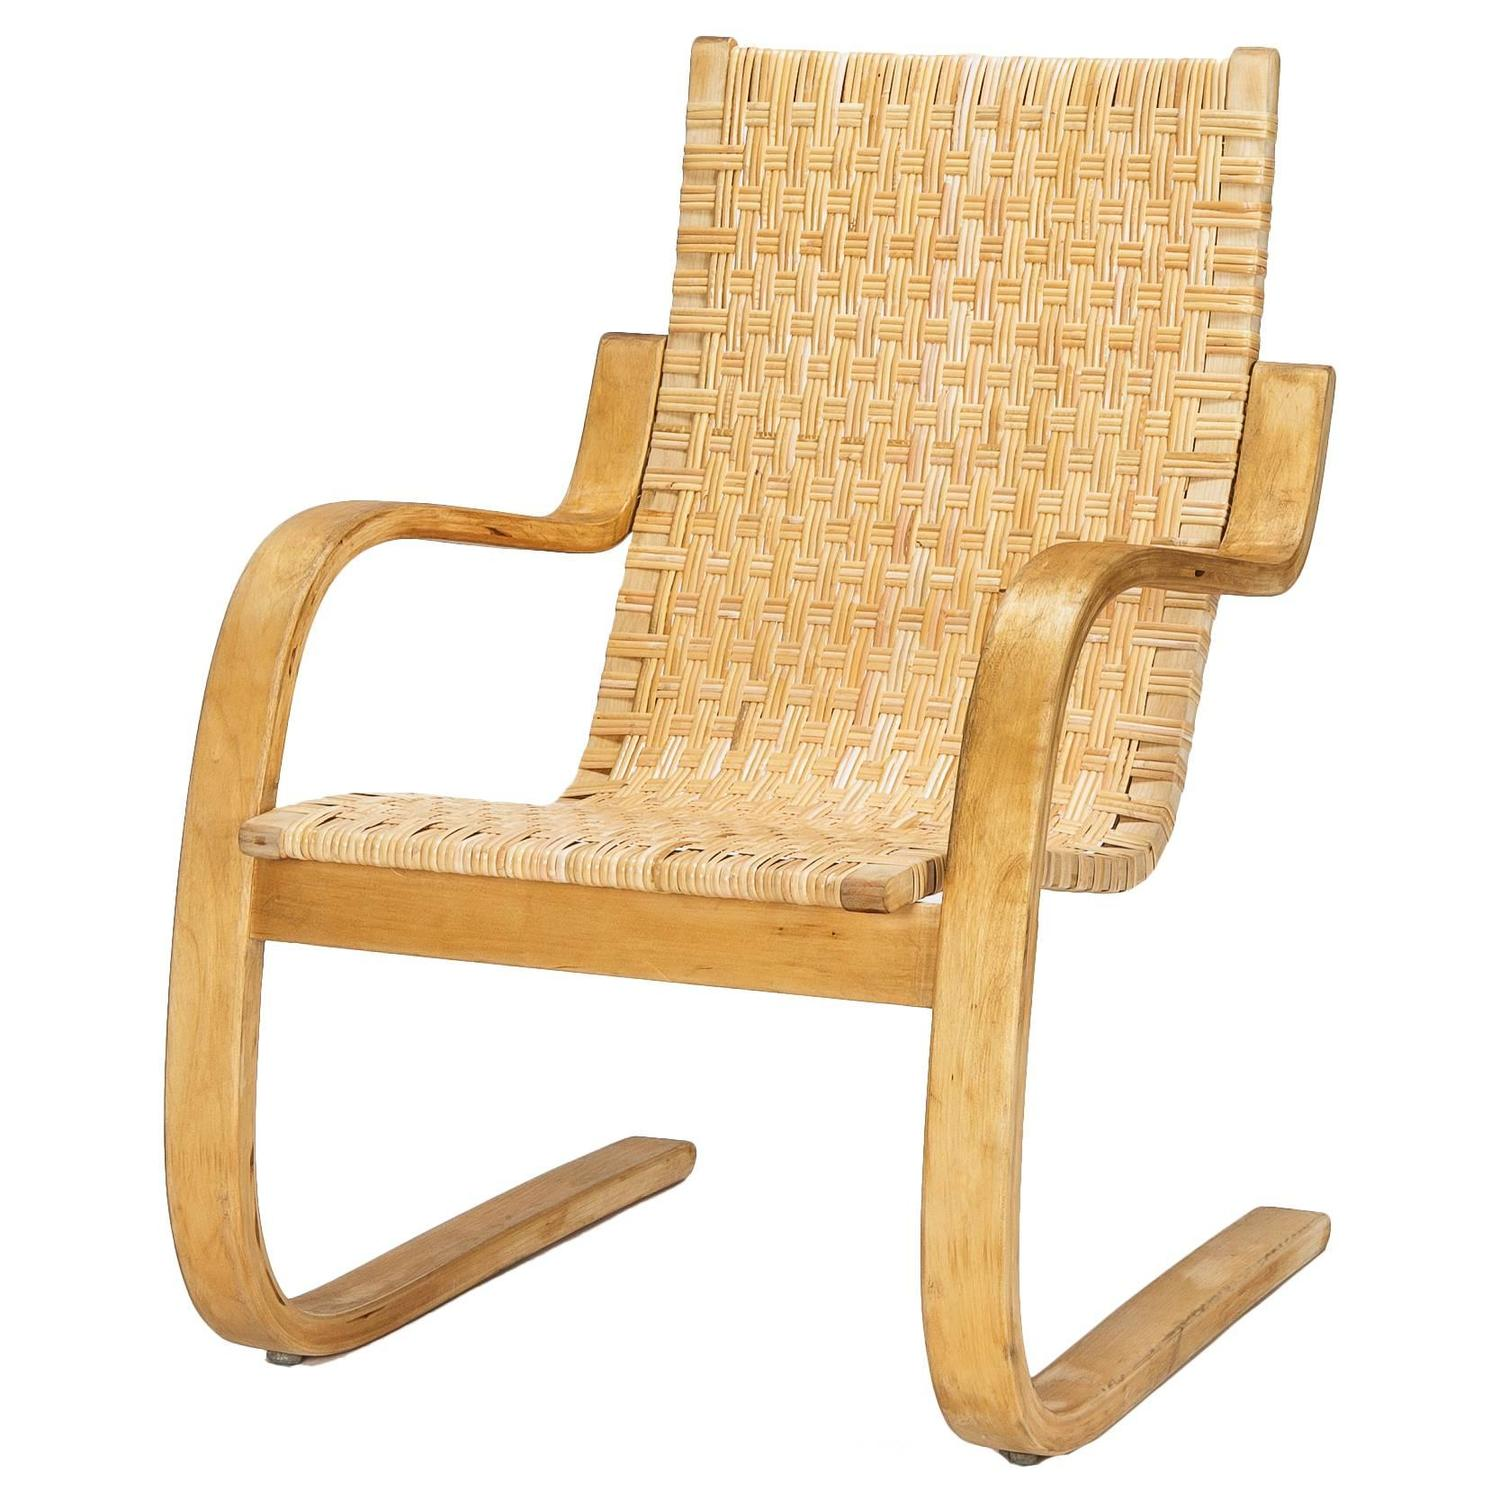 Alvar Aalto Cantilever Chair 406 By Artek In Birch And